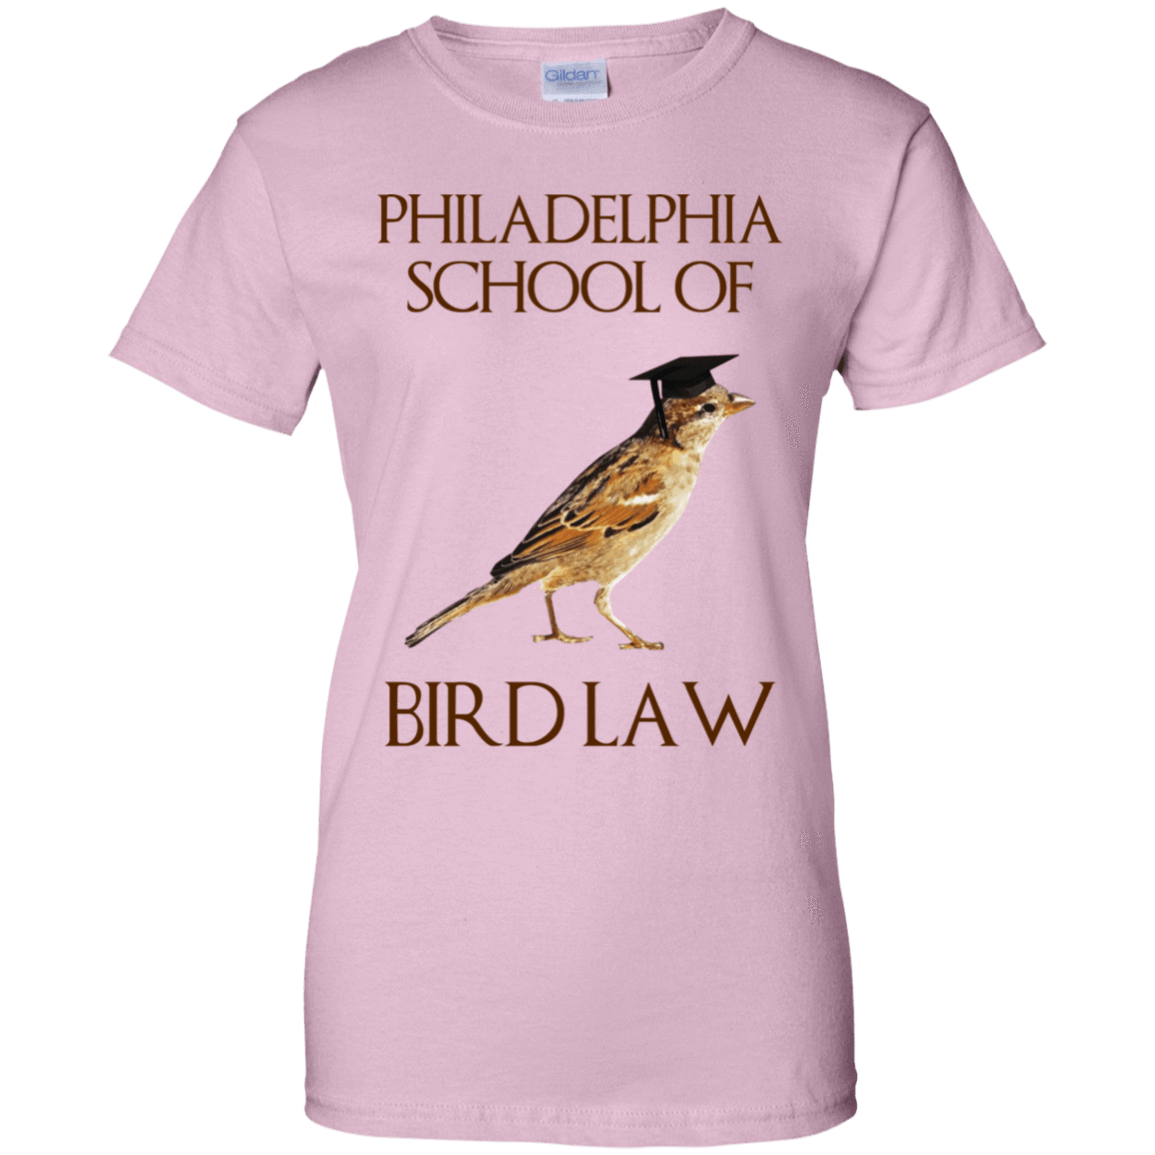 Philadelphia School of Bird Law 939-9258-73057596-44786 - Tee Ript